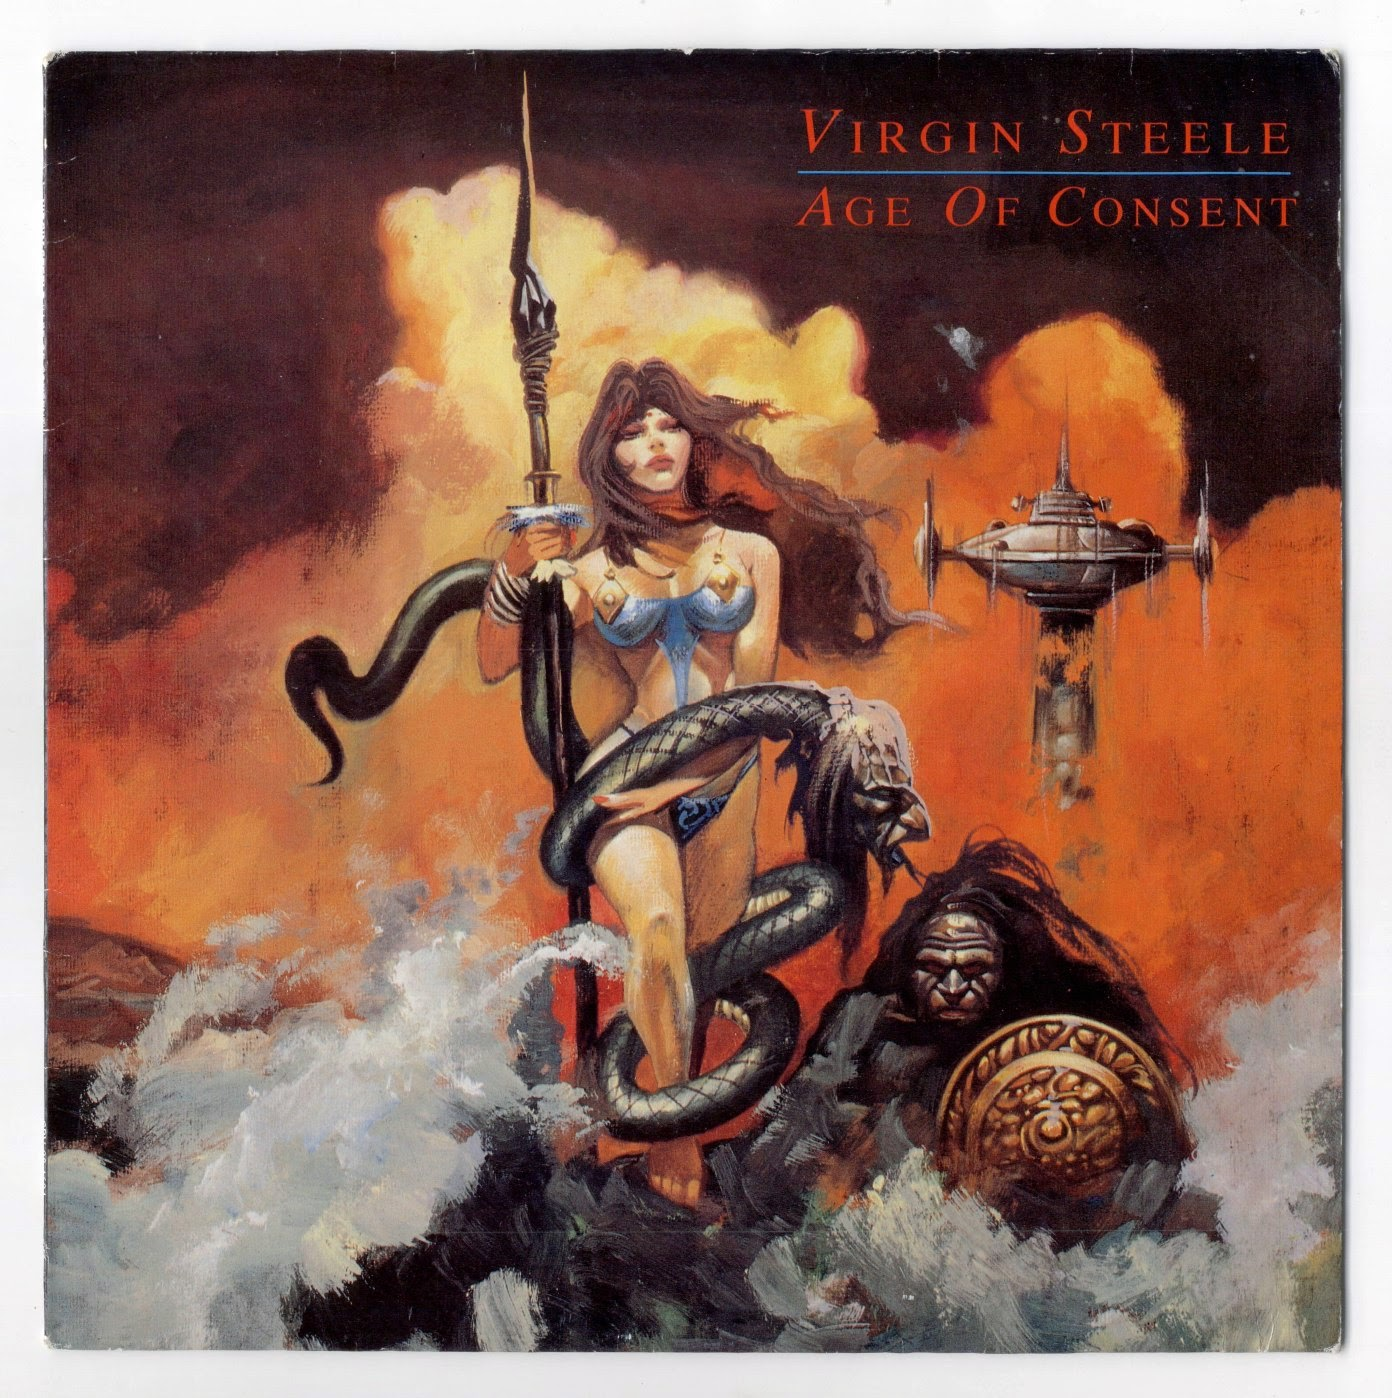 snake with a face, warrior woman, metal album cover